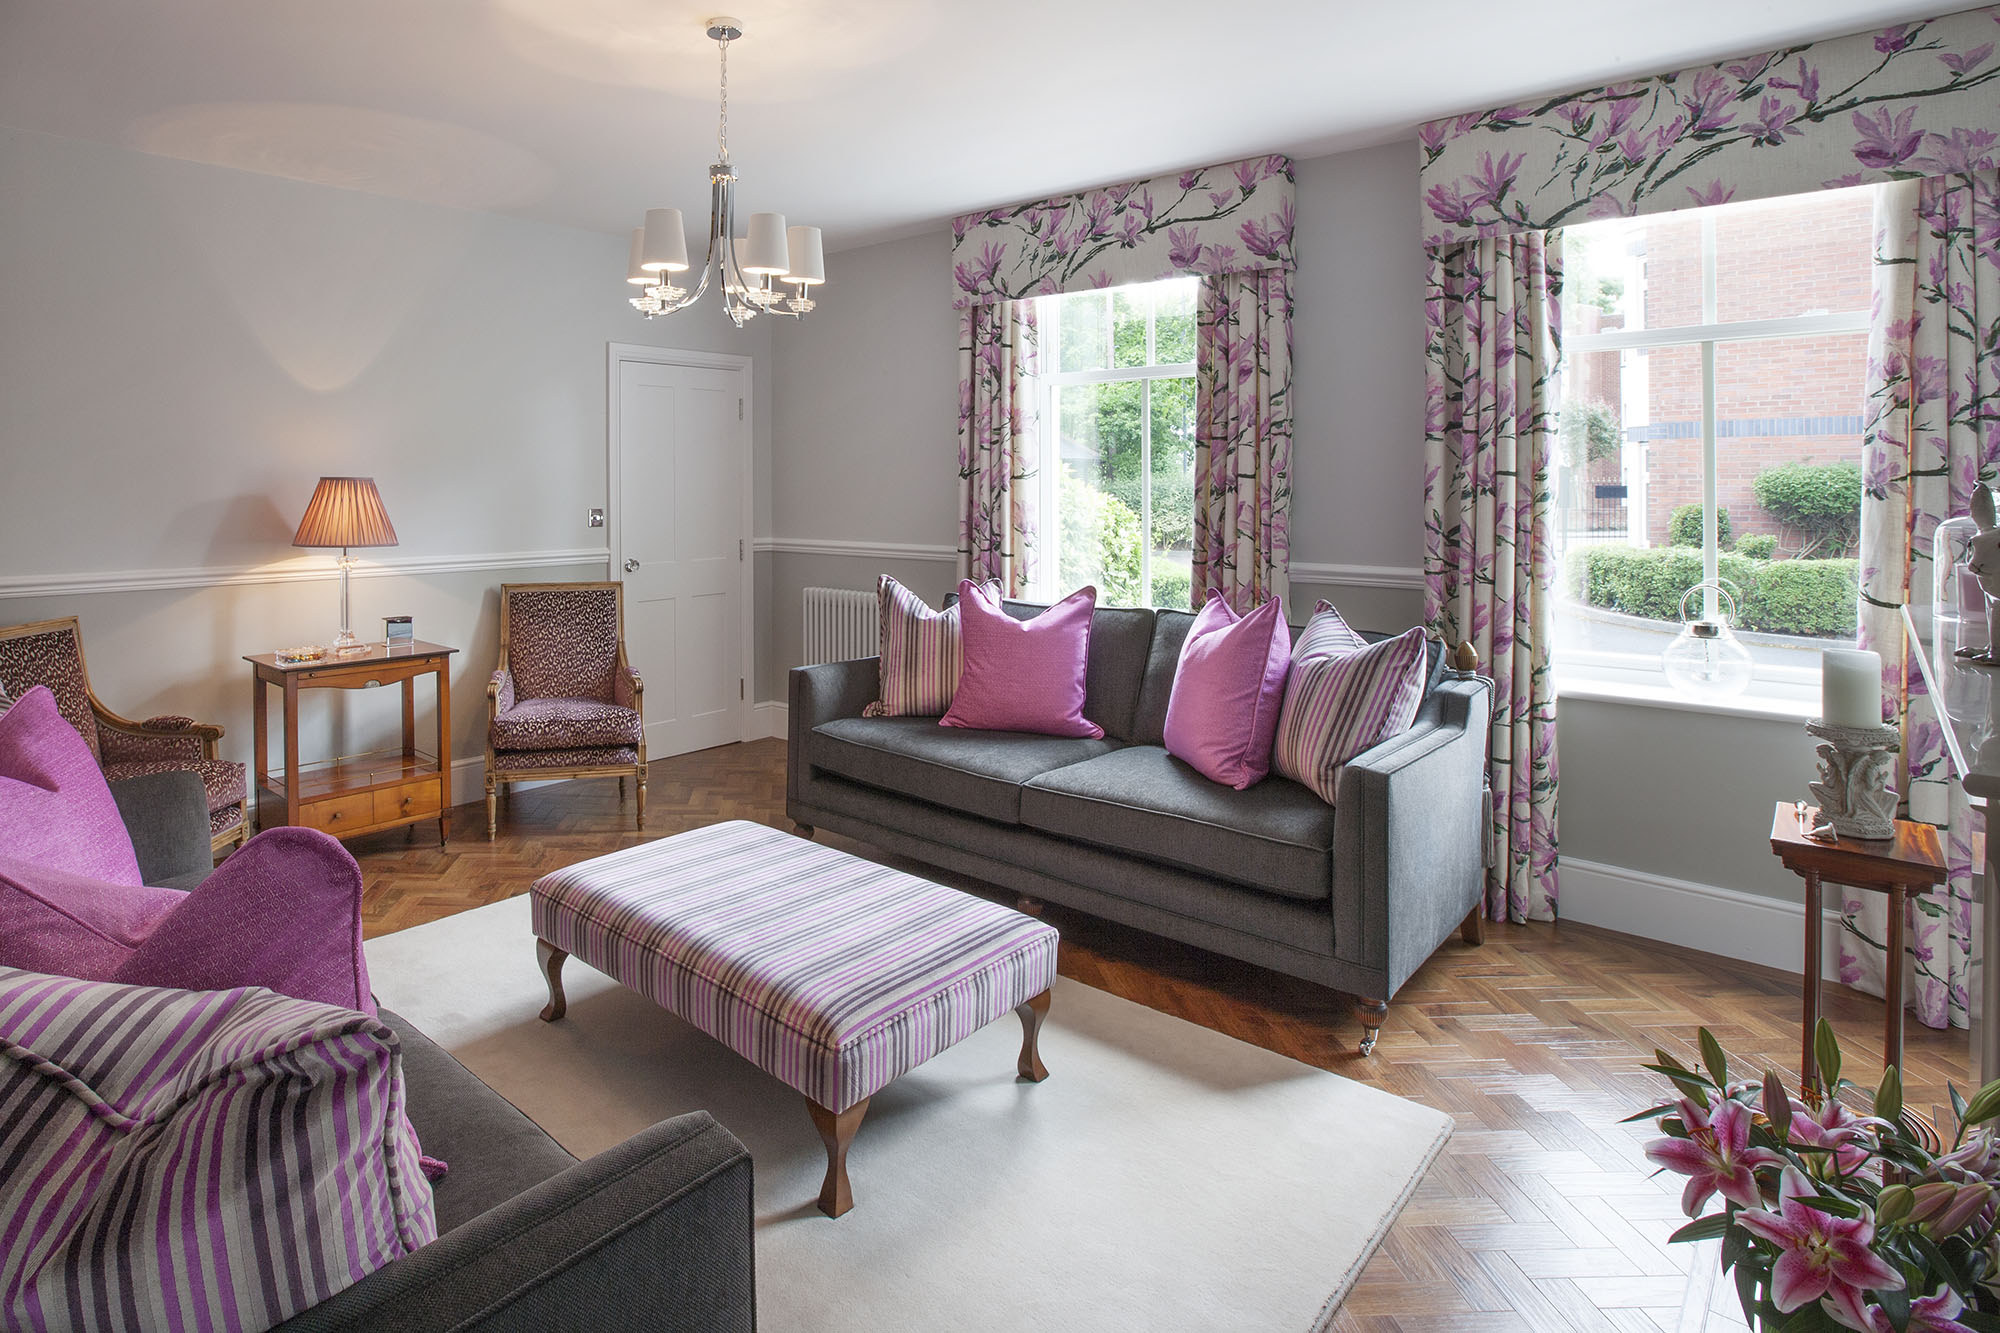 Sitting Room with pink and grey theme showing reupholstered chairs, sofas, a large footstool and wooden side tables.